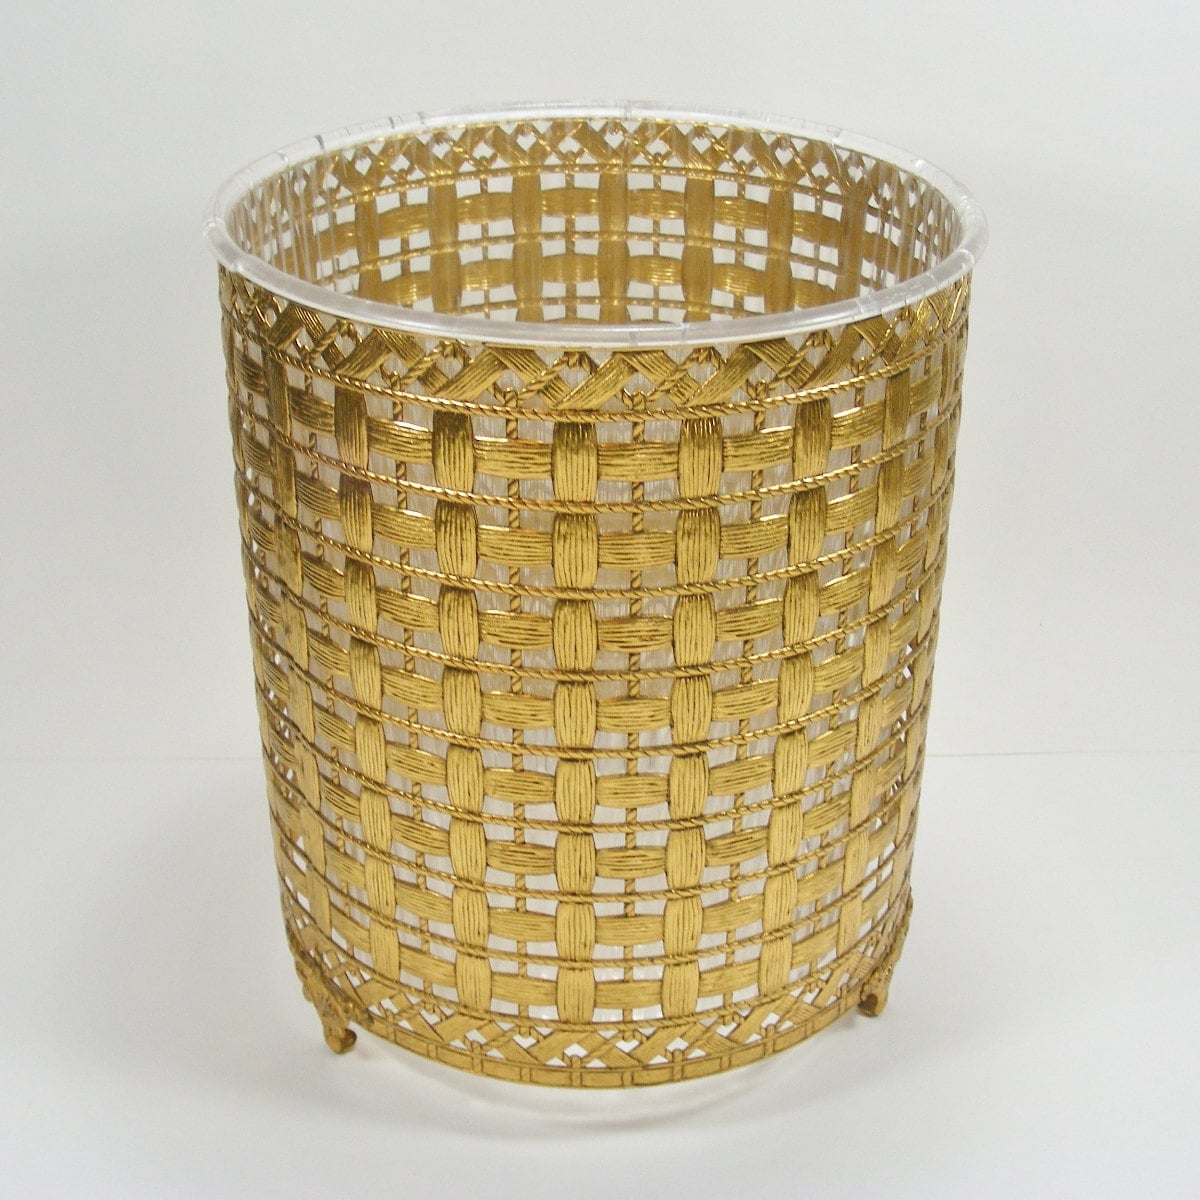 Metal Waste Basket Gold Tone Woven Look Trash Can